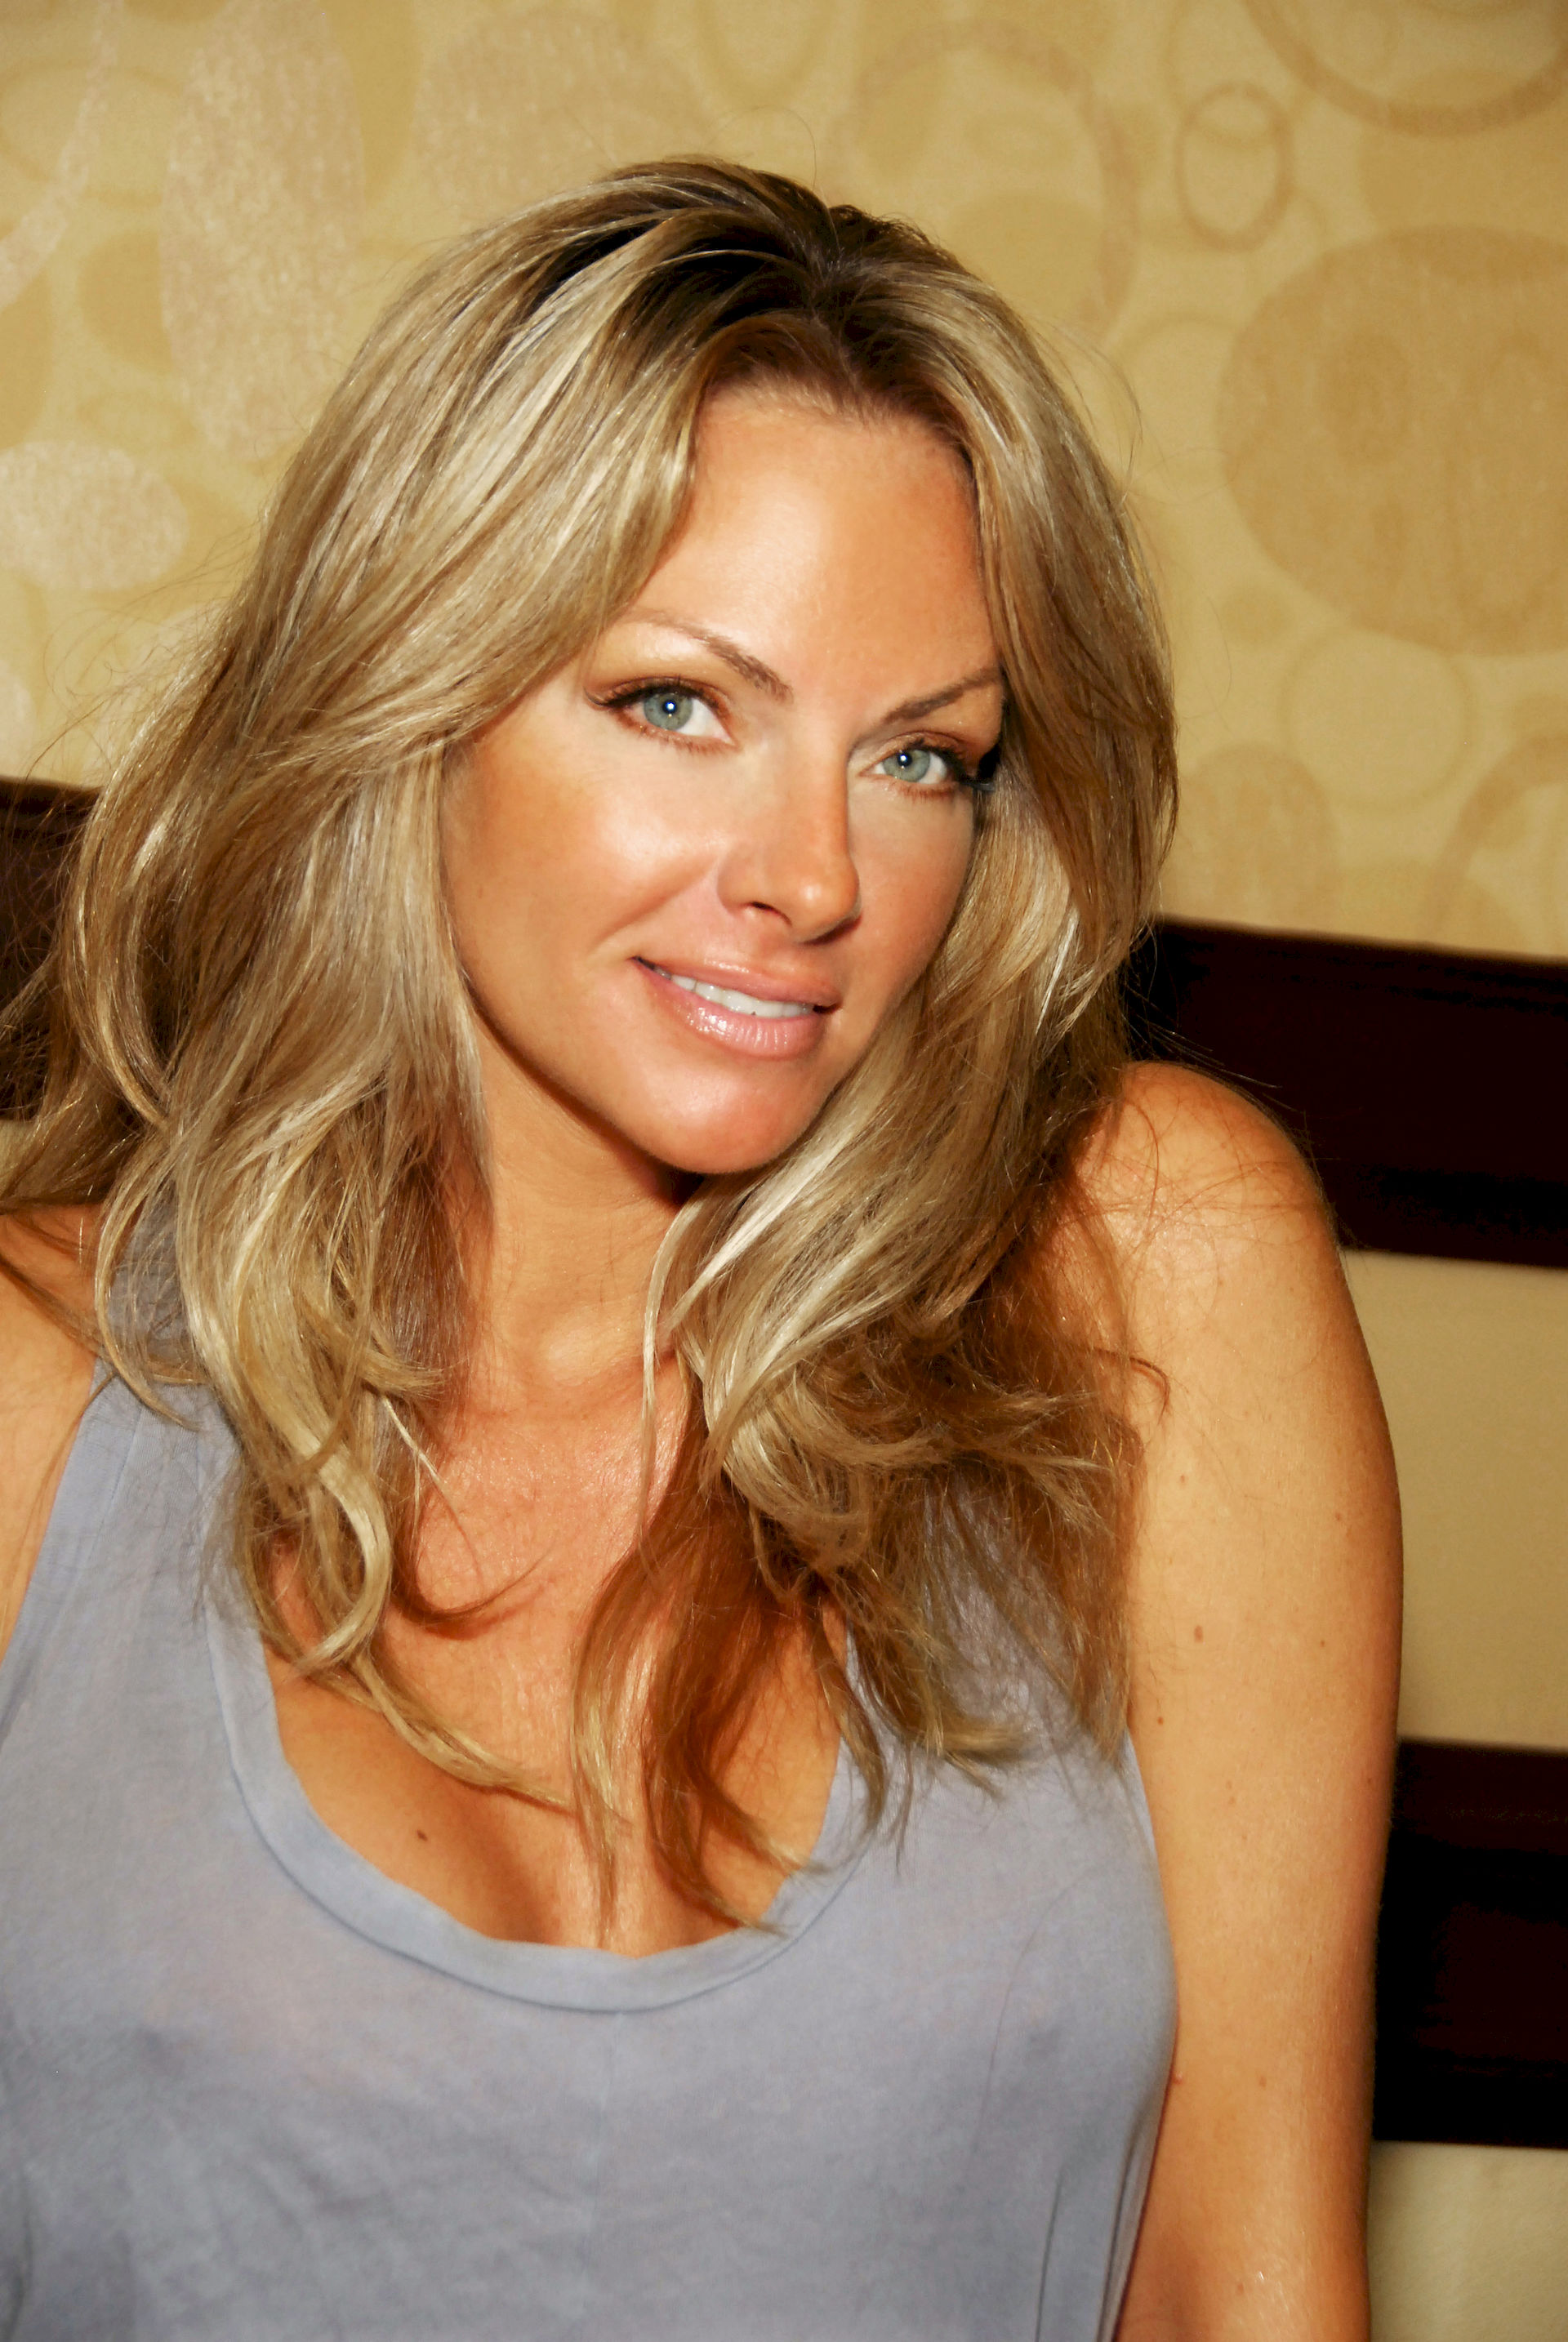 Photo of Stacy Sanches: American Playboy Playmate